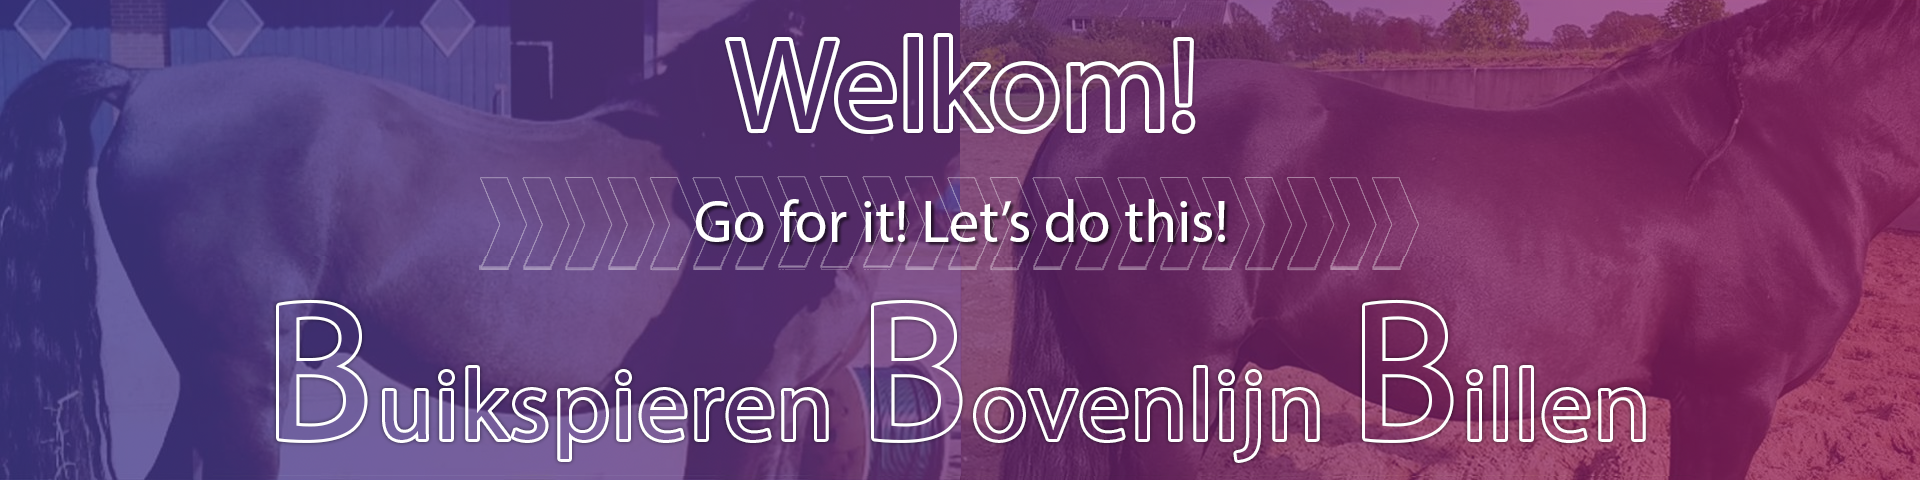 Go for it! Let's do This! BBB cursus, buikspieren bovenlijn billen